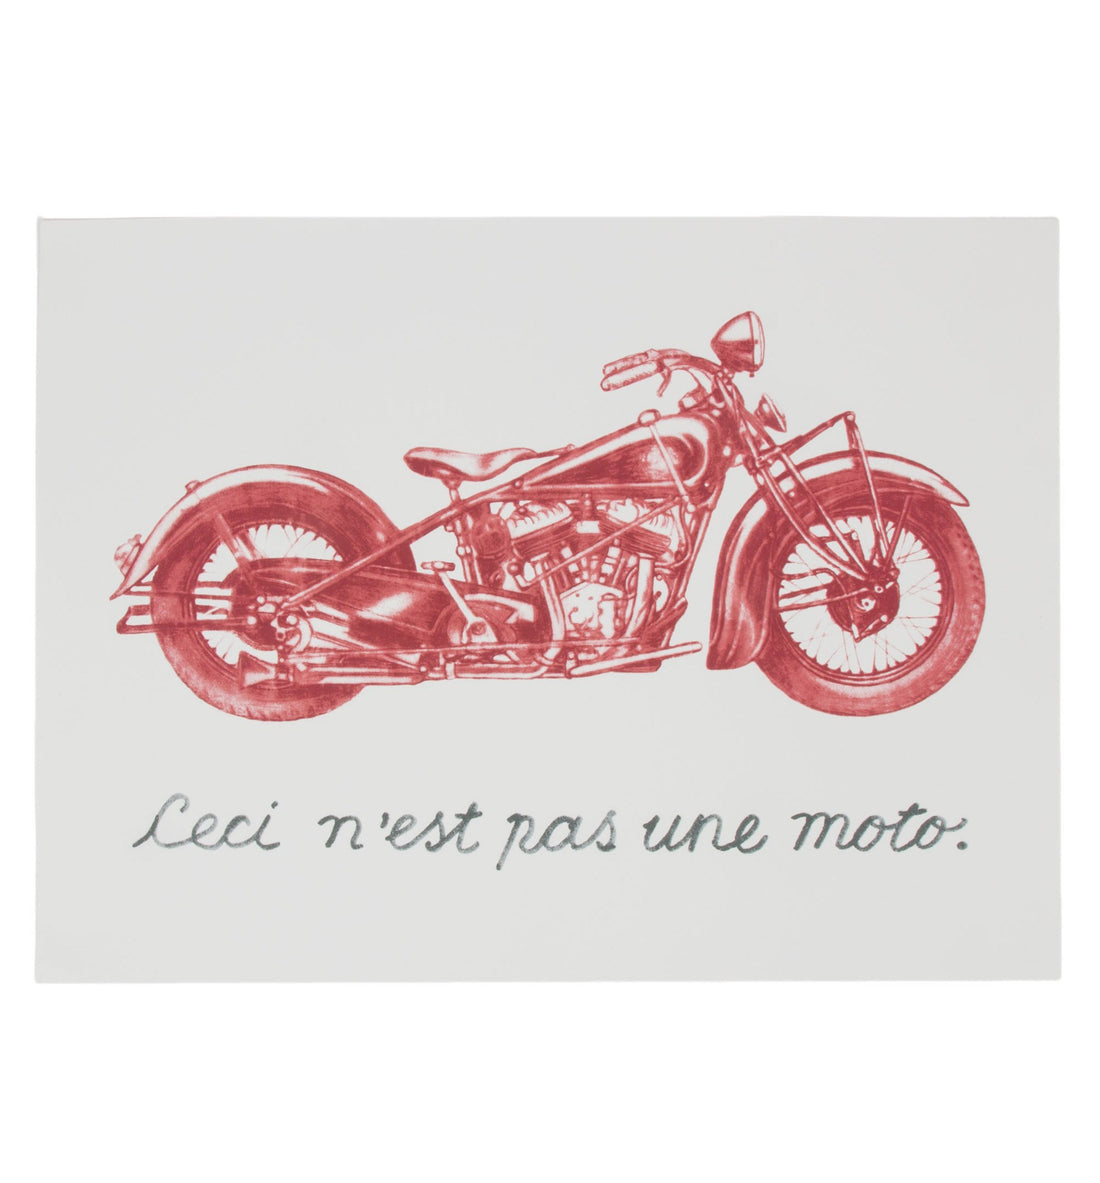 Not A Moto Poster - Art/Prints - Iron and Resin